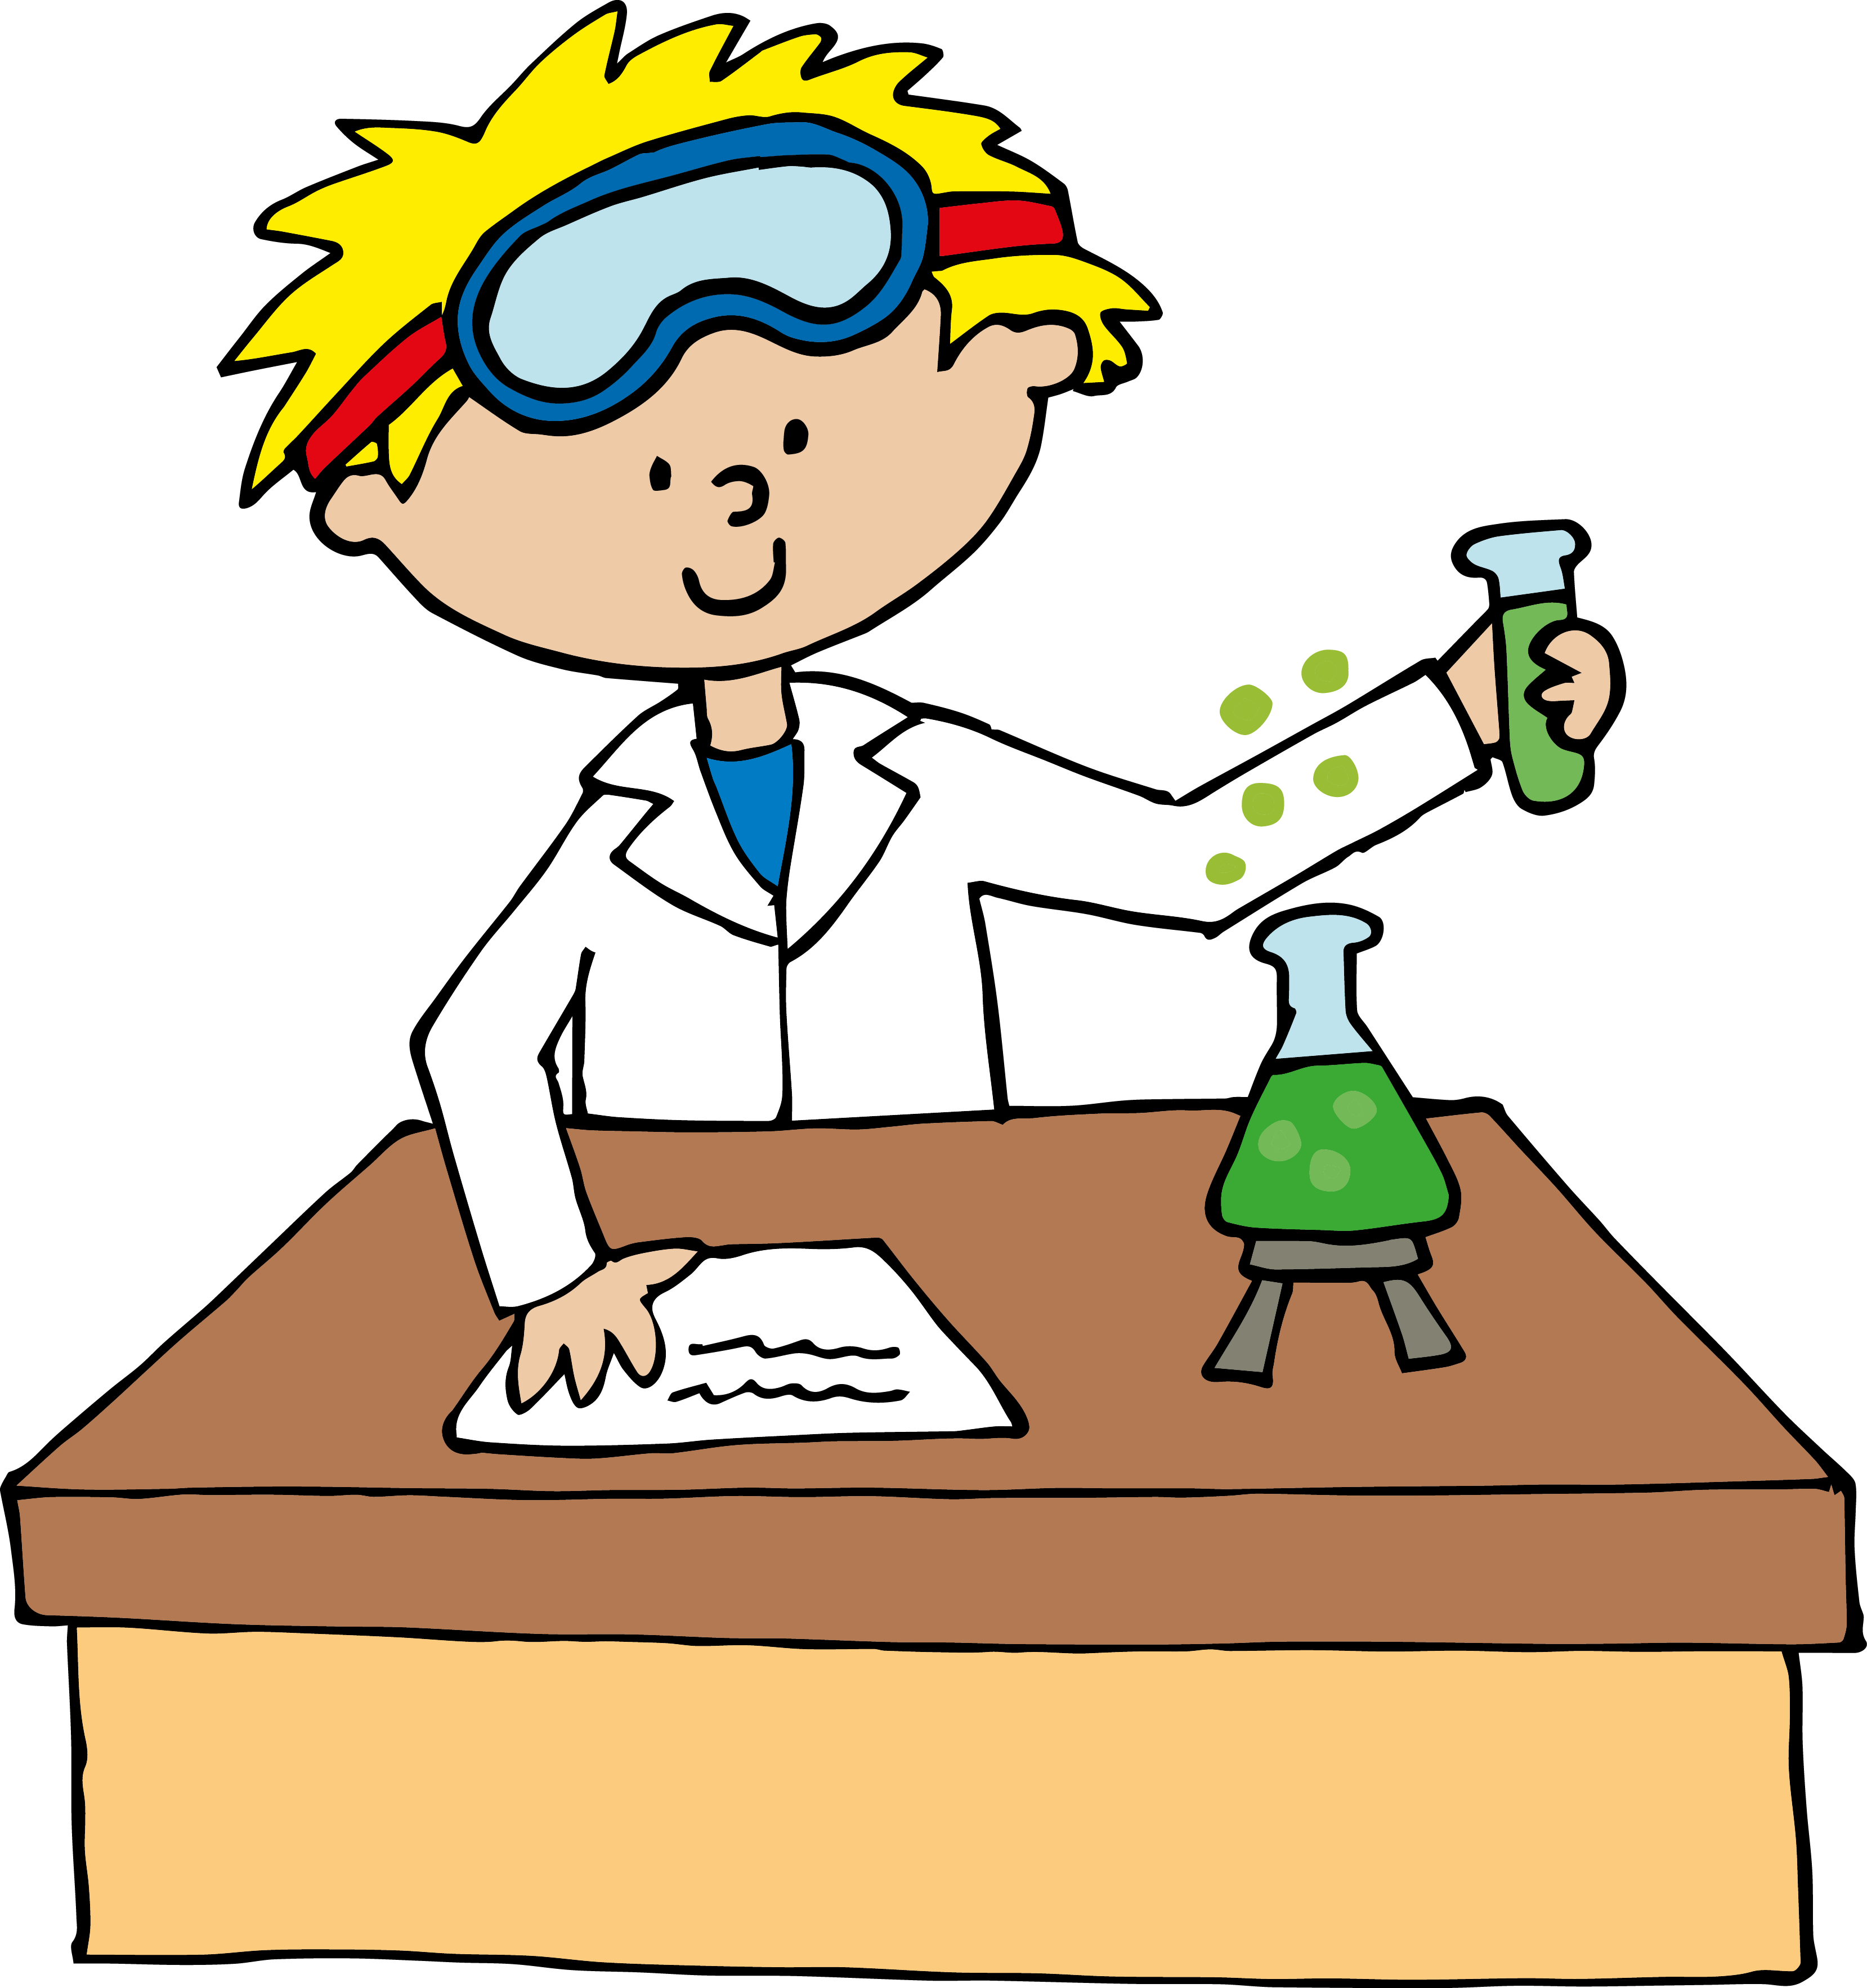 Science Related Clip Arts Free Cliparts -Science Related Clip Arts Free Cliparts That You Can Download To You-6